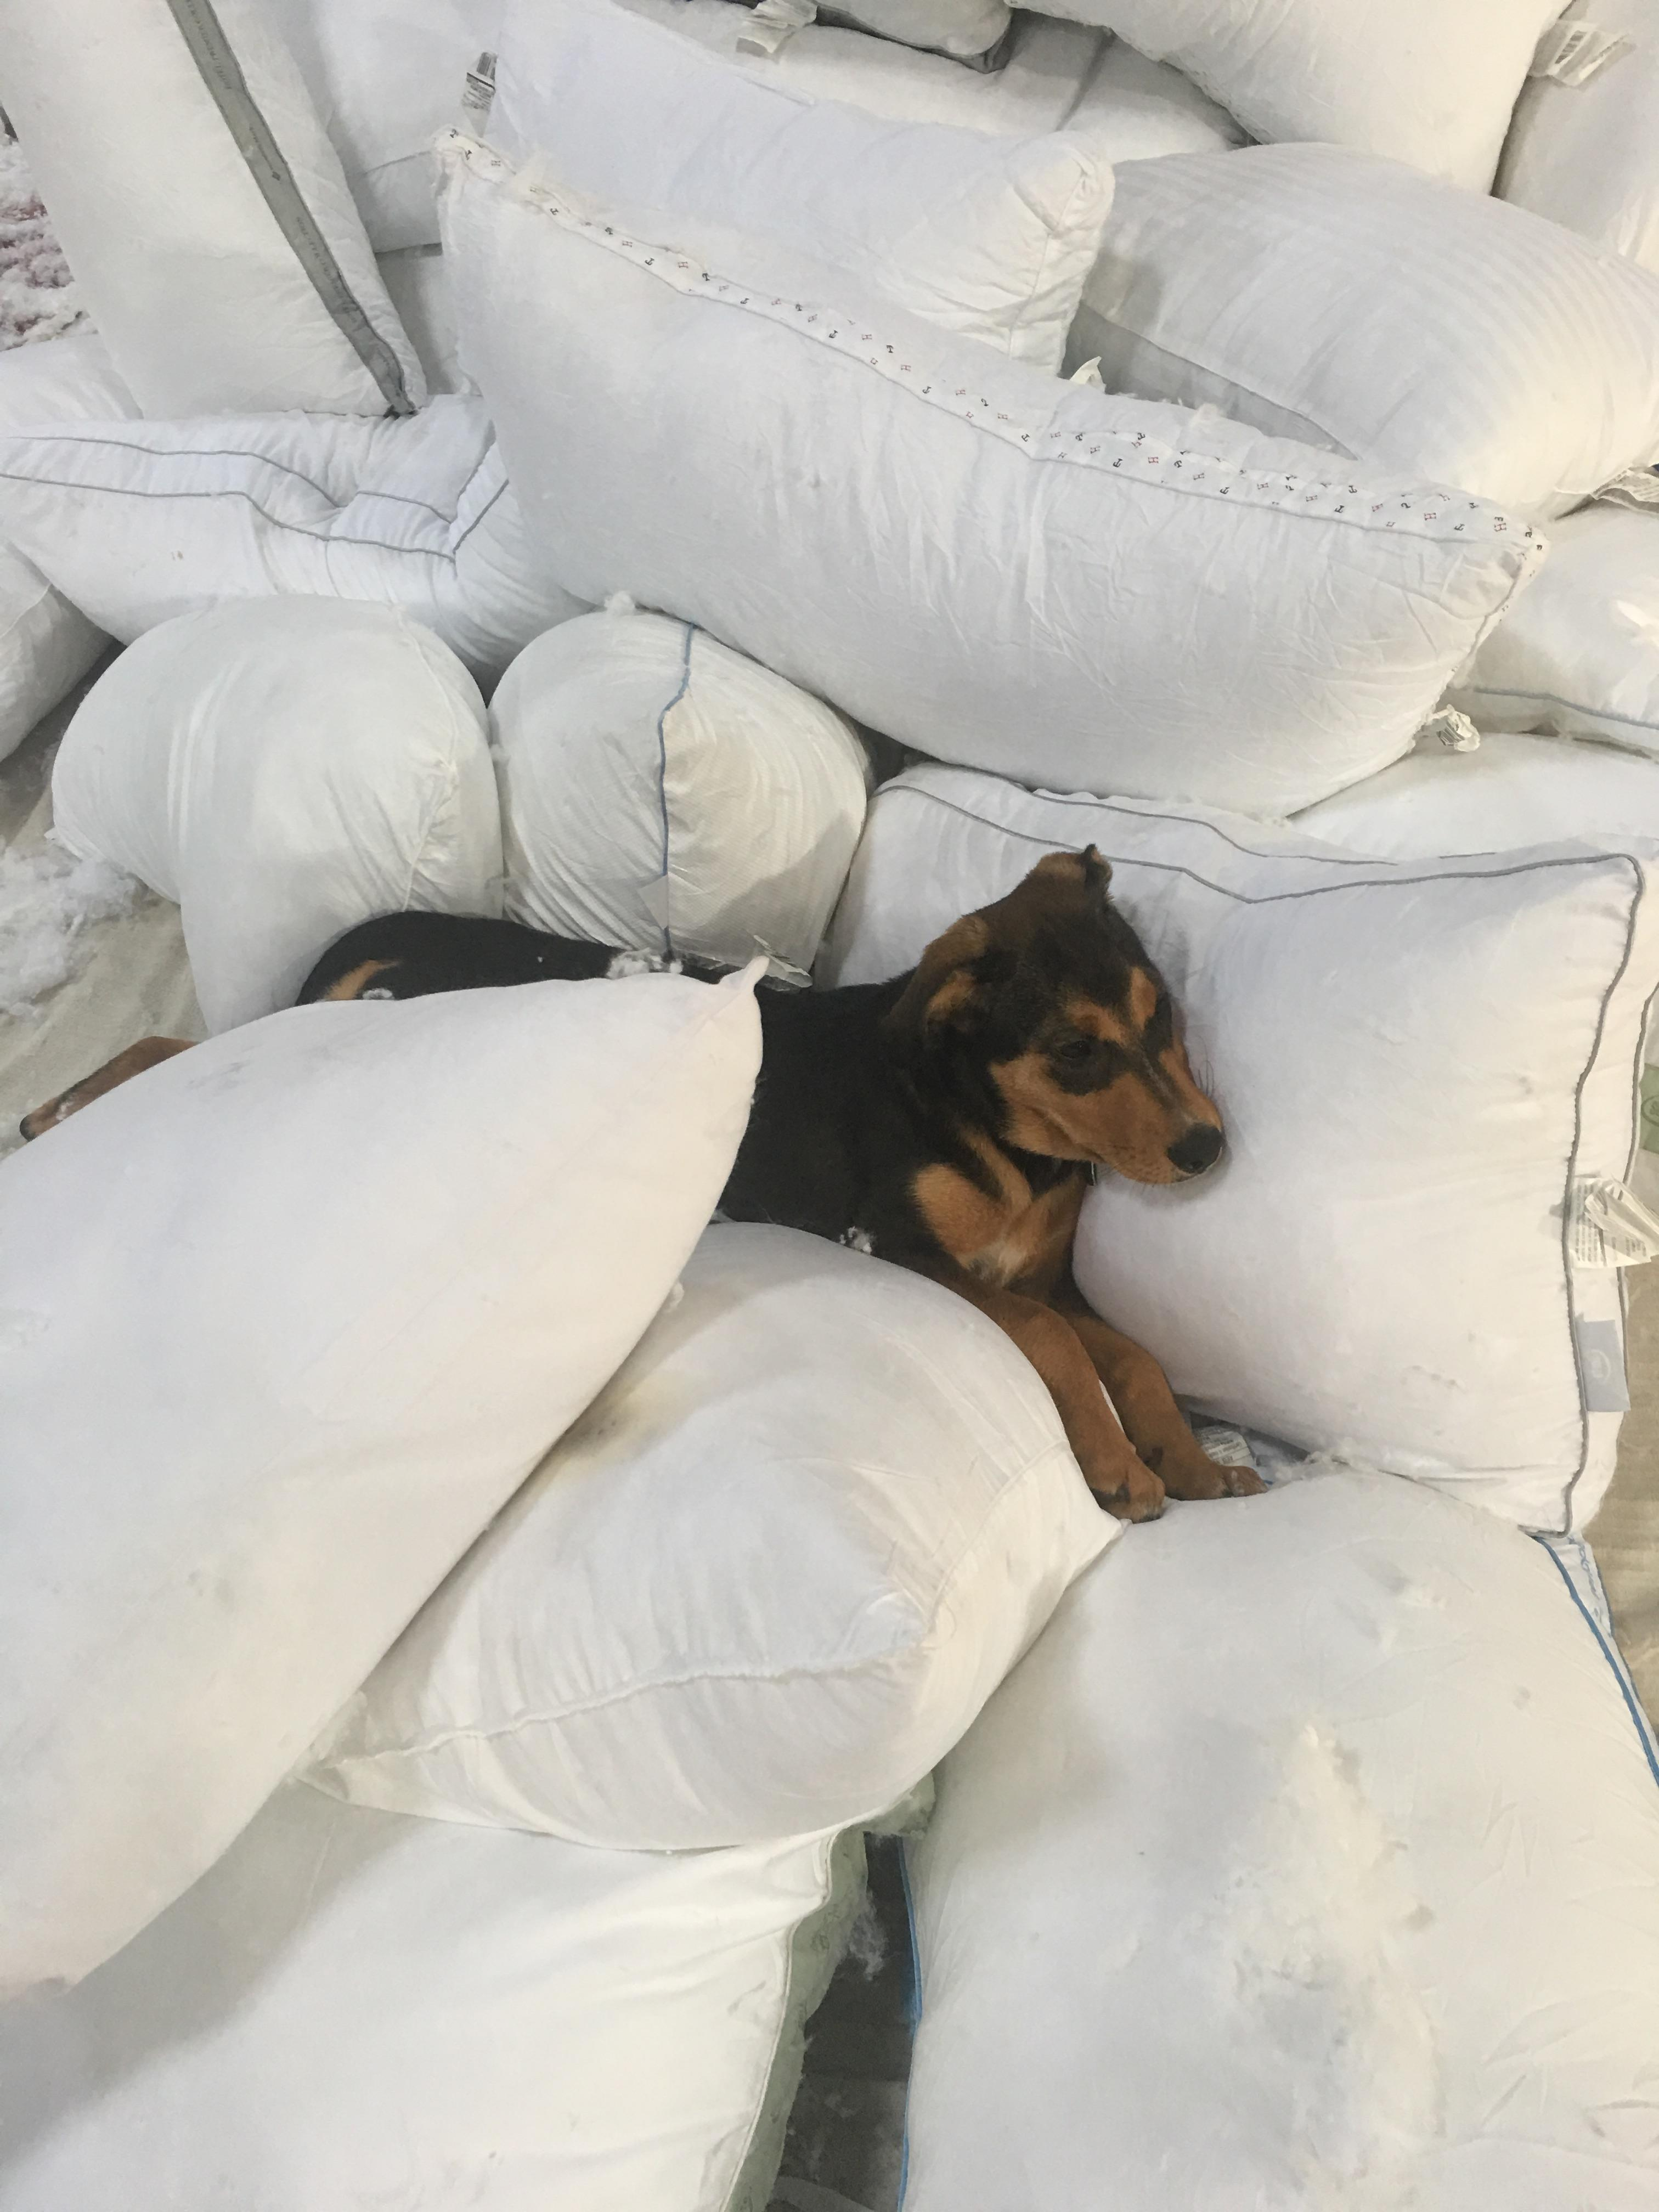 My-pillow-factory Brought My Dog To My Aunt 39s Pillow Factory This Proceeded